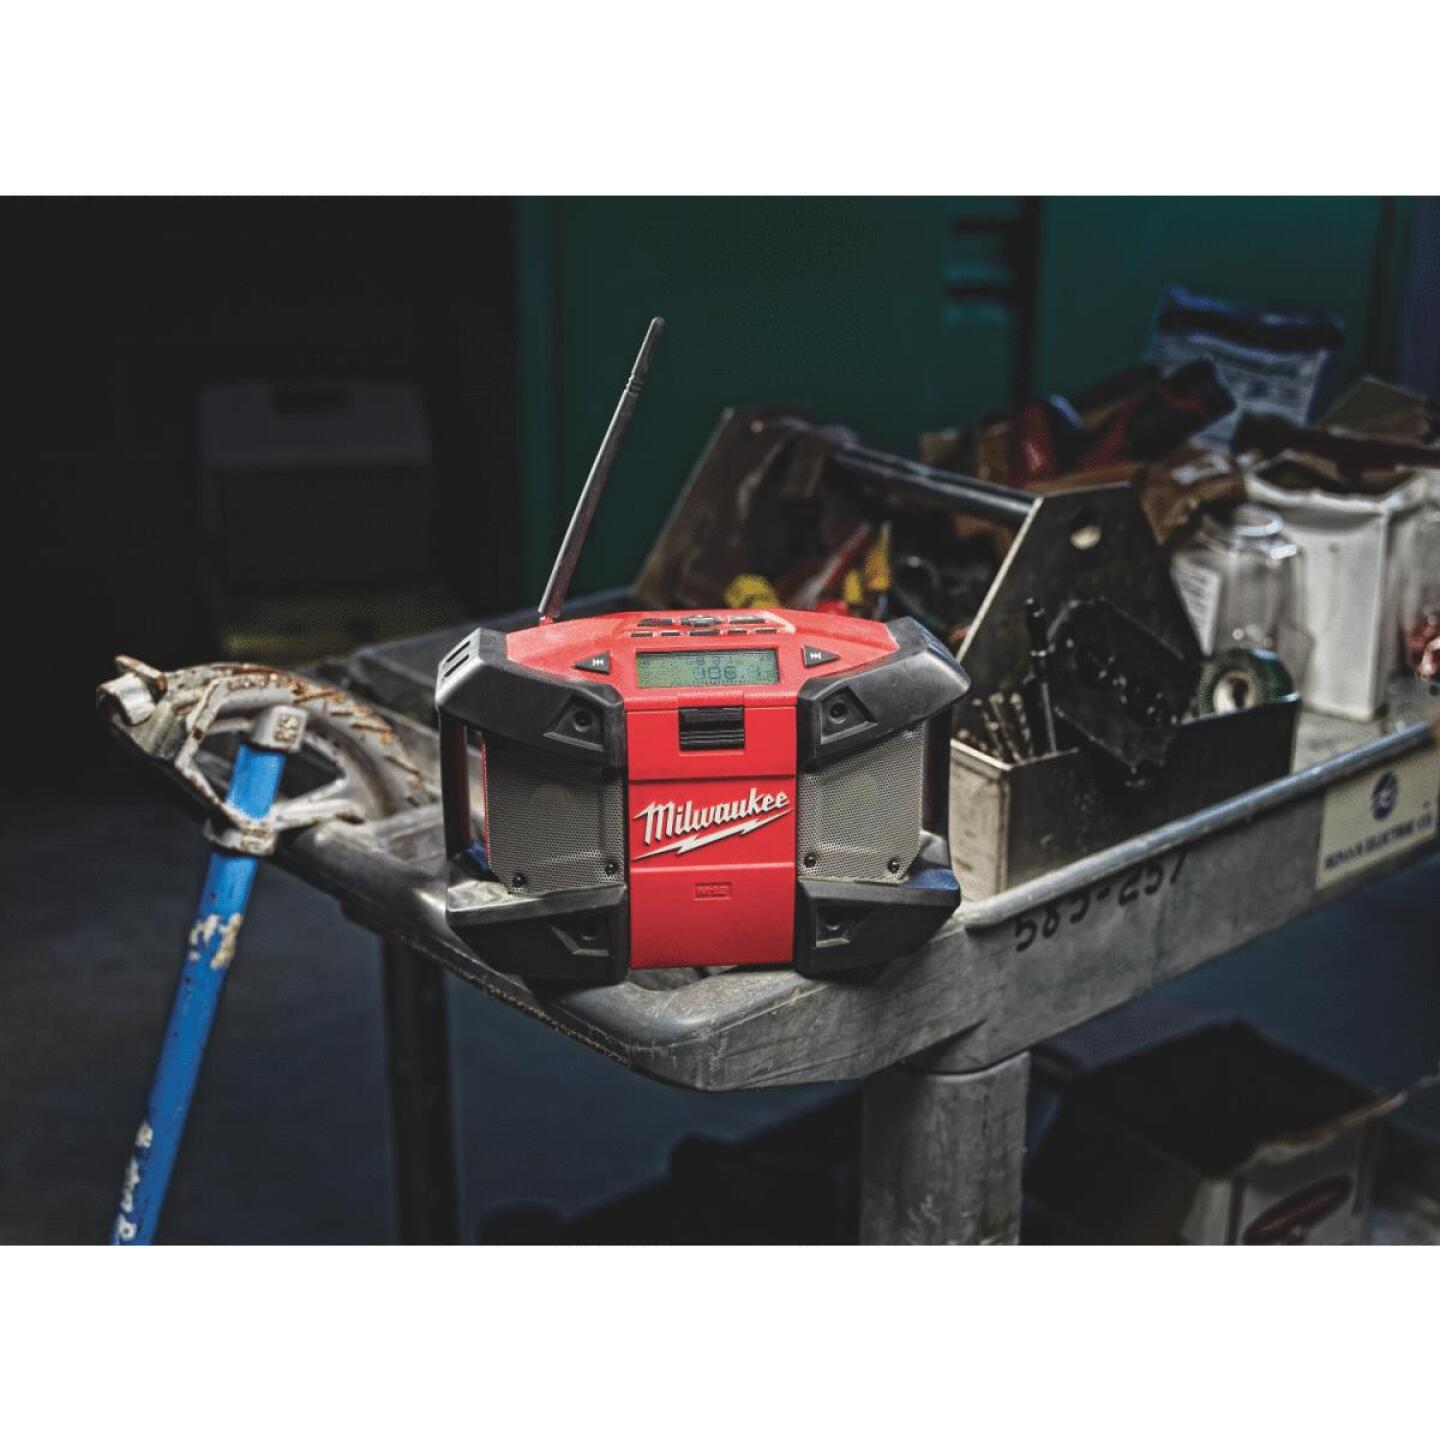 Milwaukee M12 12 Volt Lithium-Ion Cordless Jobsite Radio (Bare Tool) Image 2